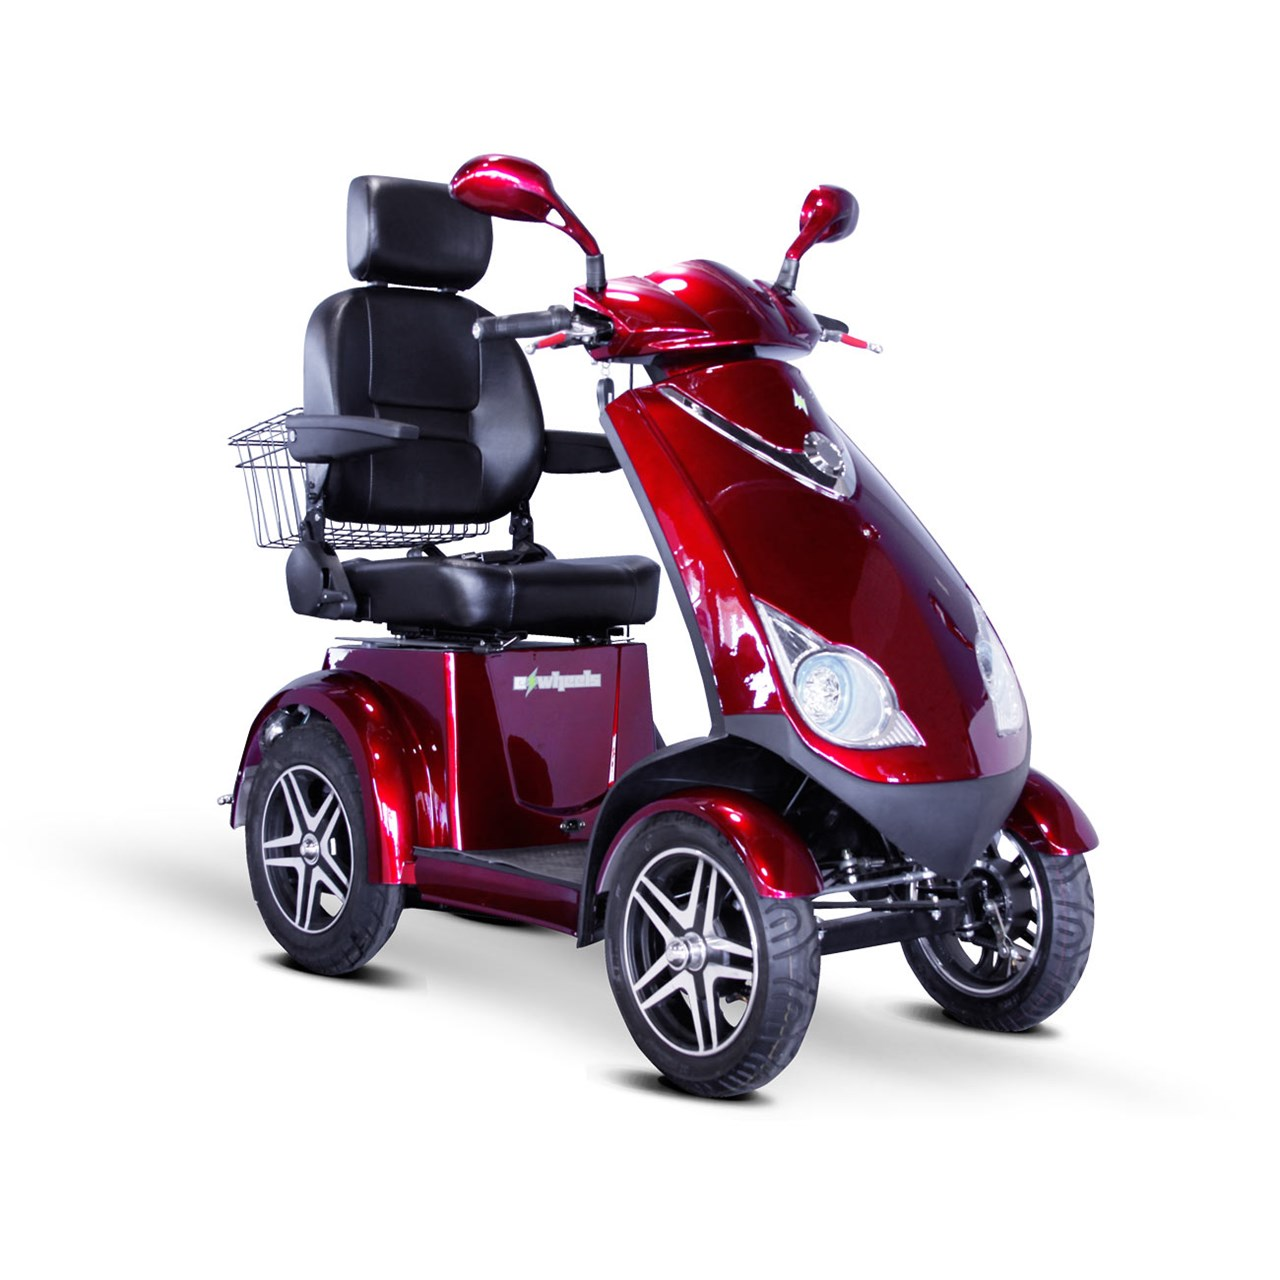 4 Wheel Heavy Duty 500lbs. Wt. Capacity Scooter with Electromagnetic Brakes - Red, EWHEELS